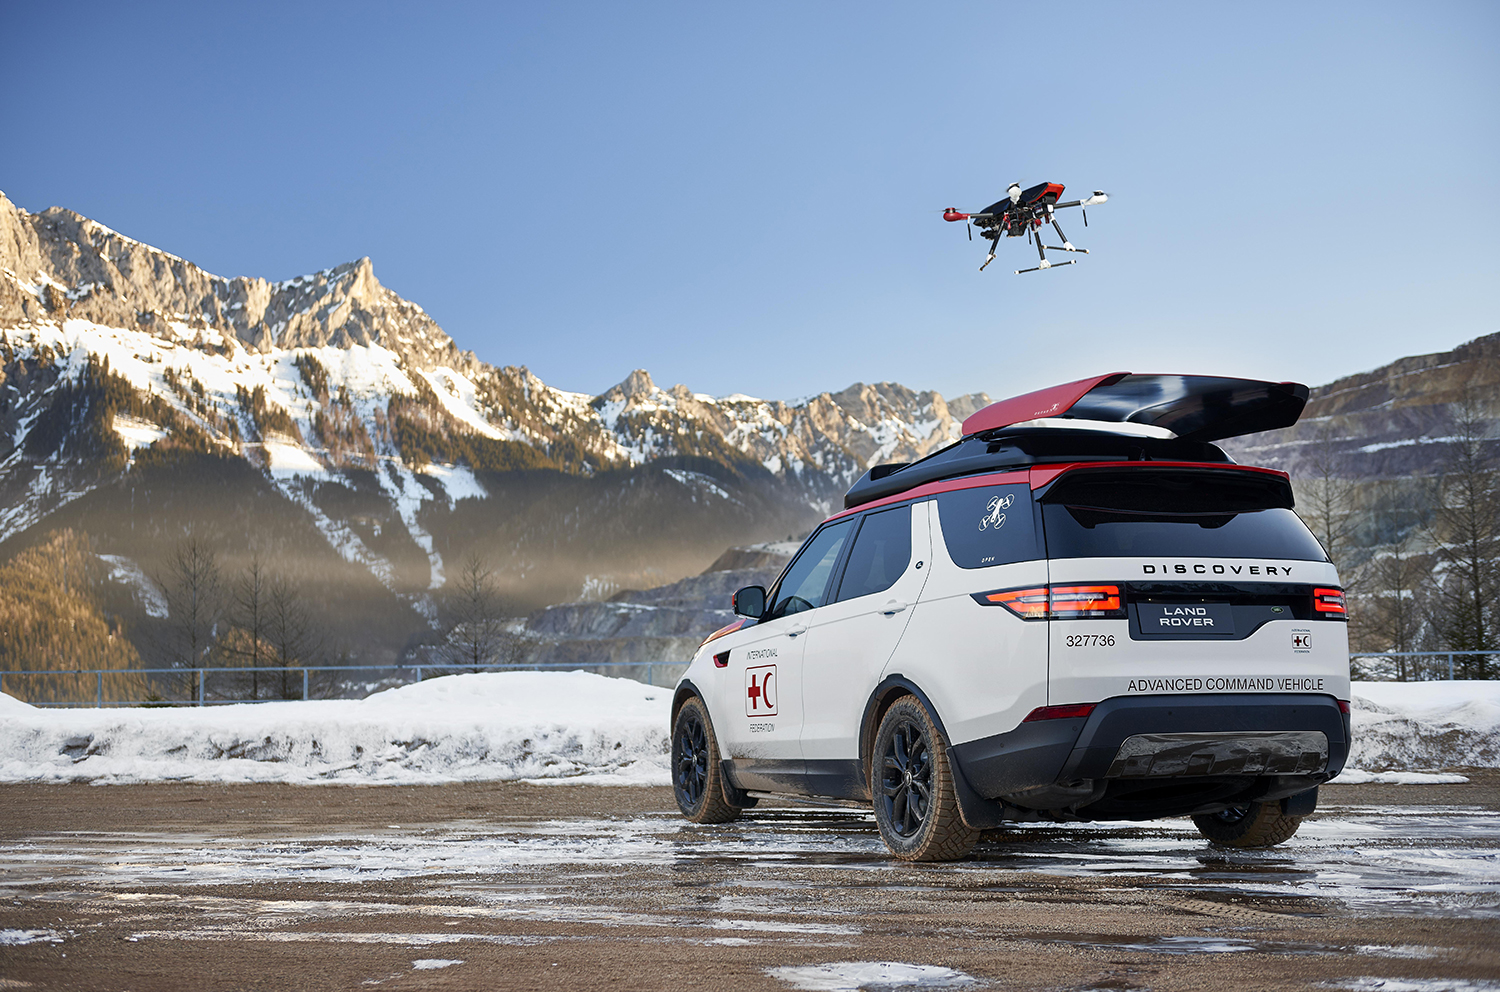 Search Amp Rescue Land Rover Deploys Drone From Roof